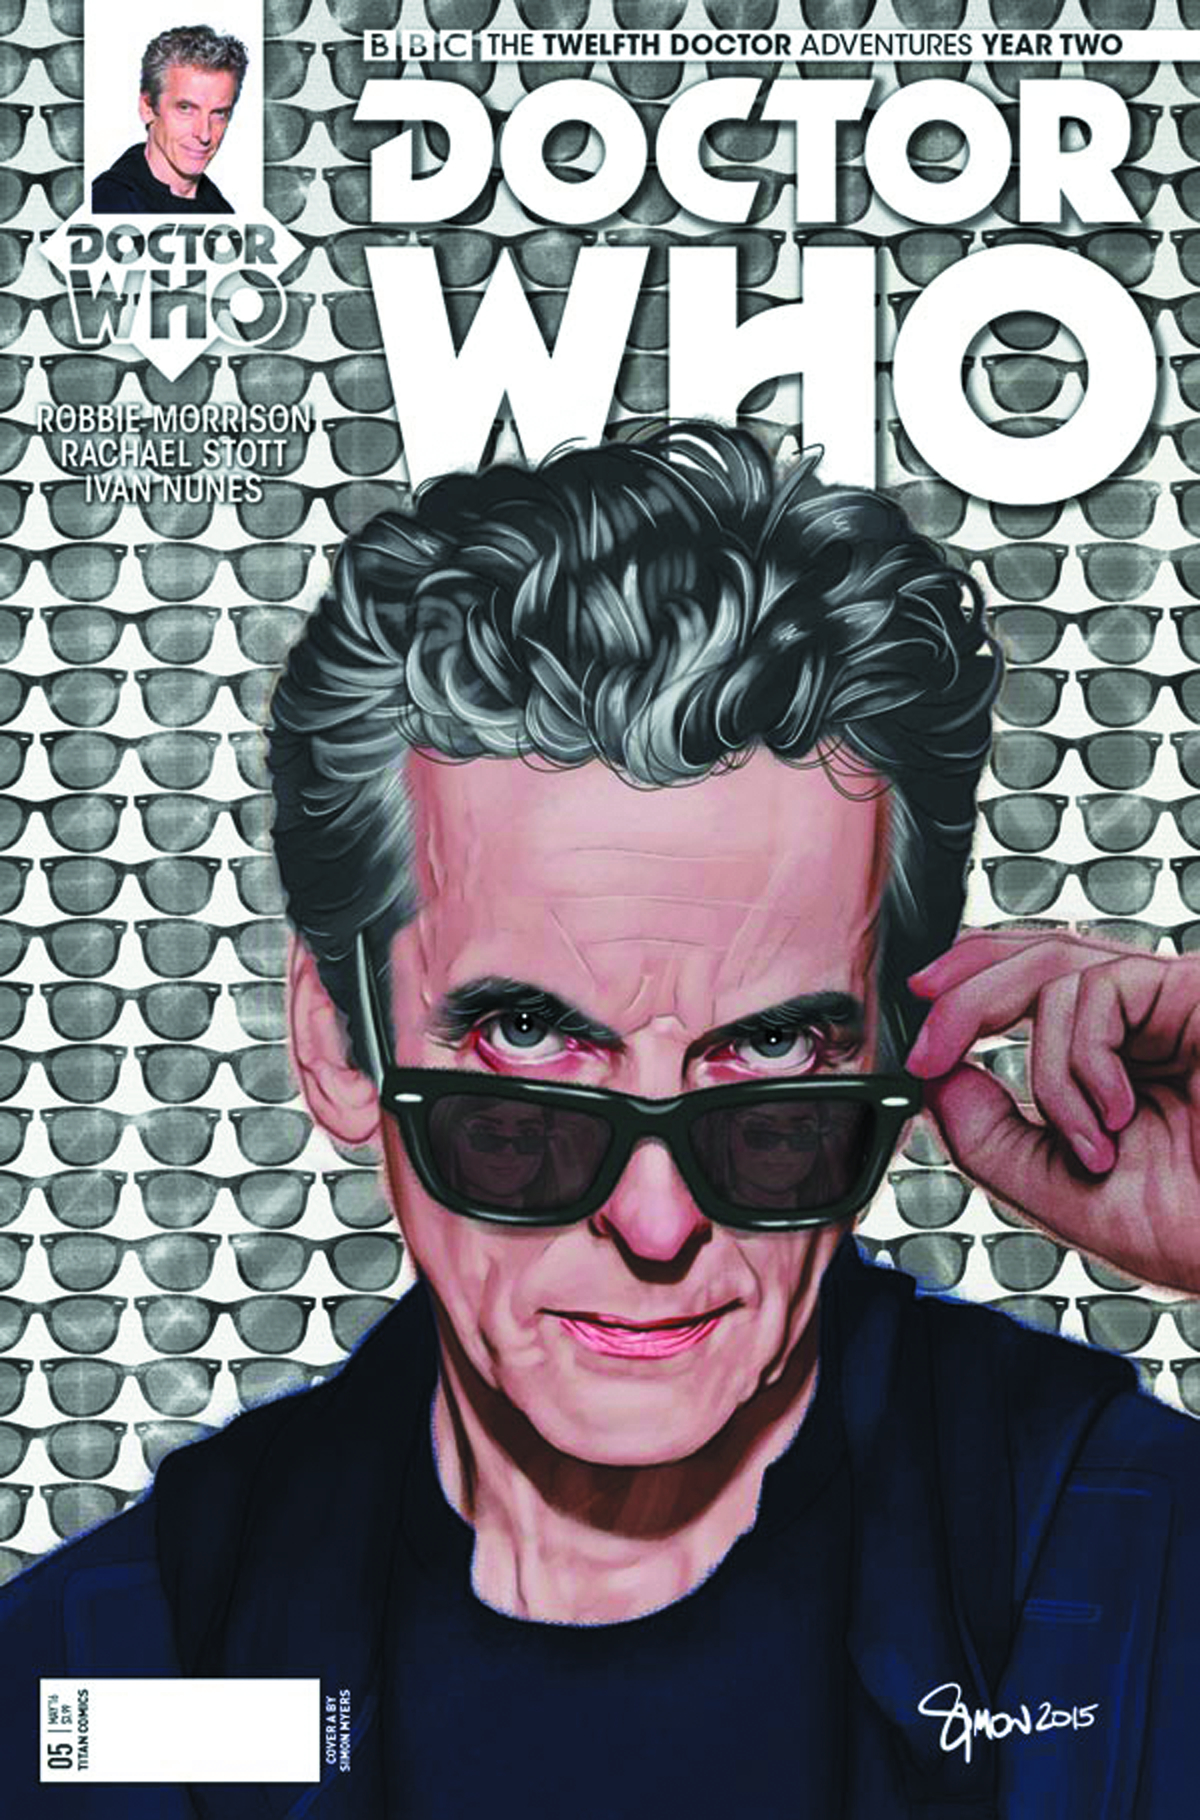 DOCTOR WHO 12TH YEAR TWO #5 CVR A MYERS